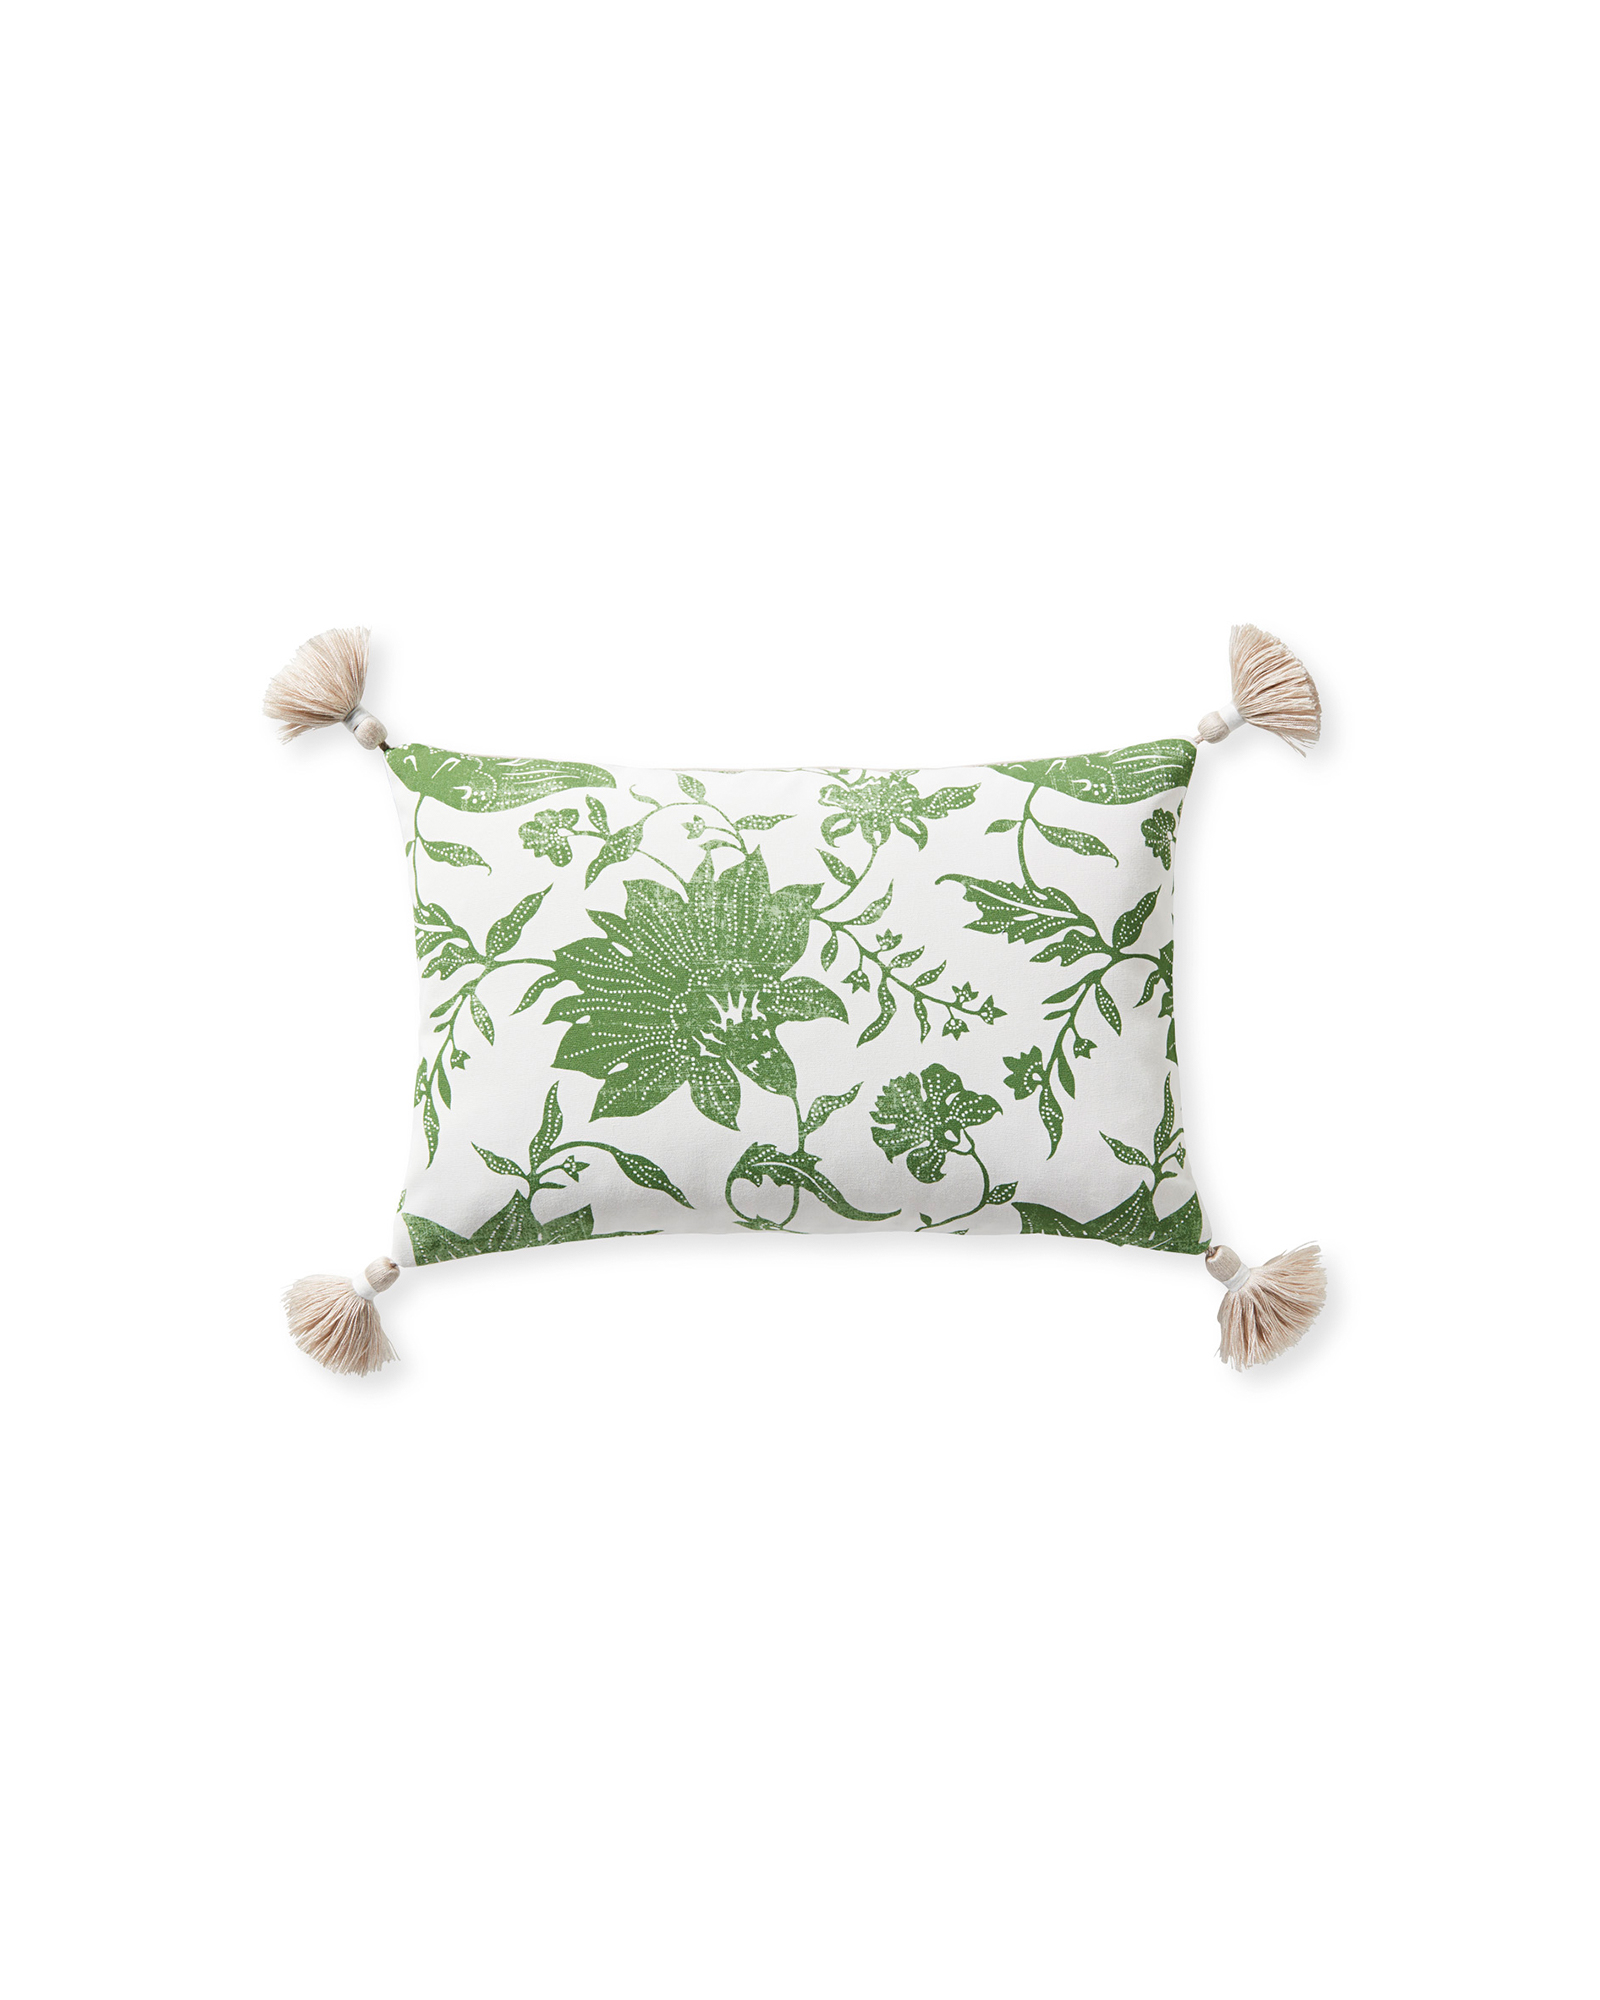 Deauville Pillow Cover, Moss